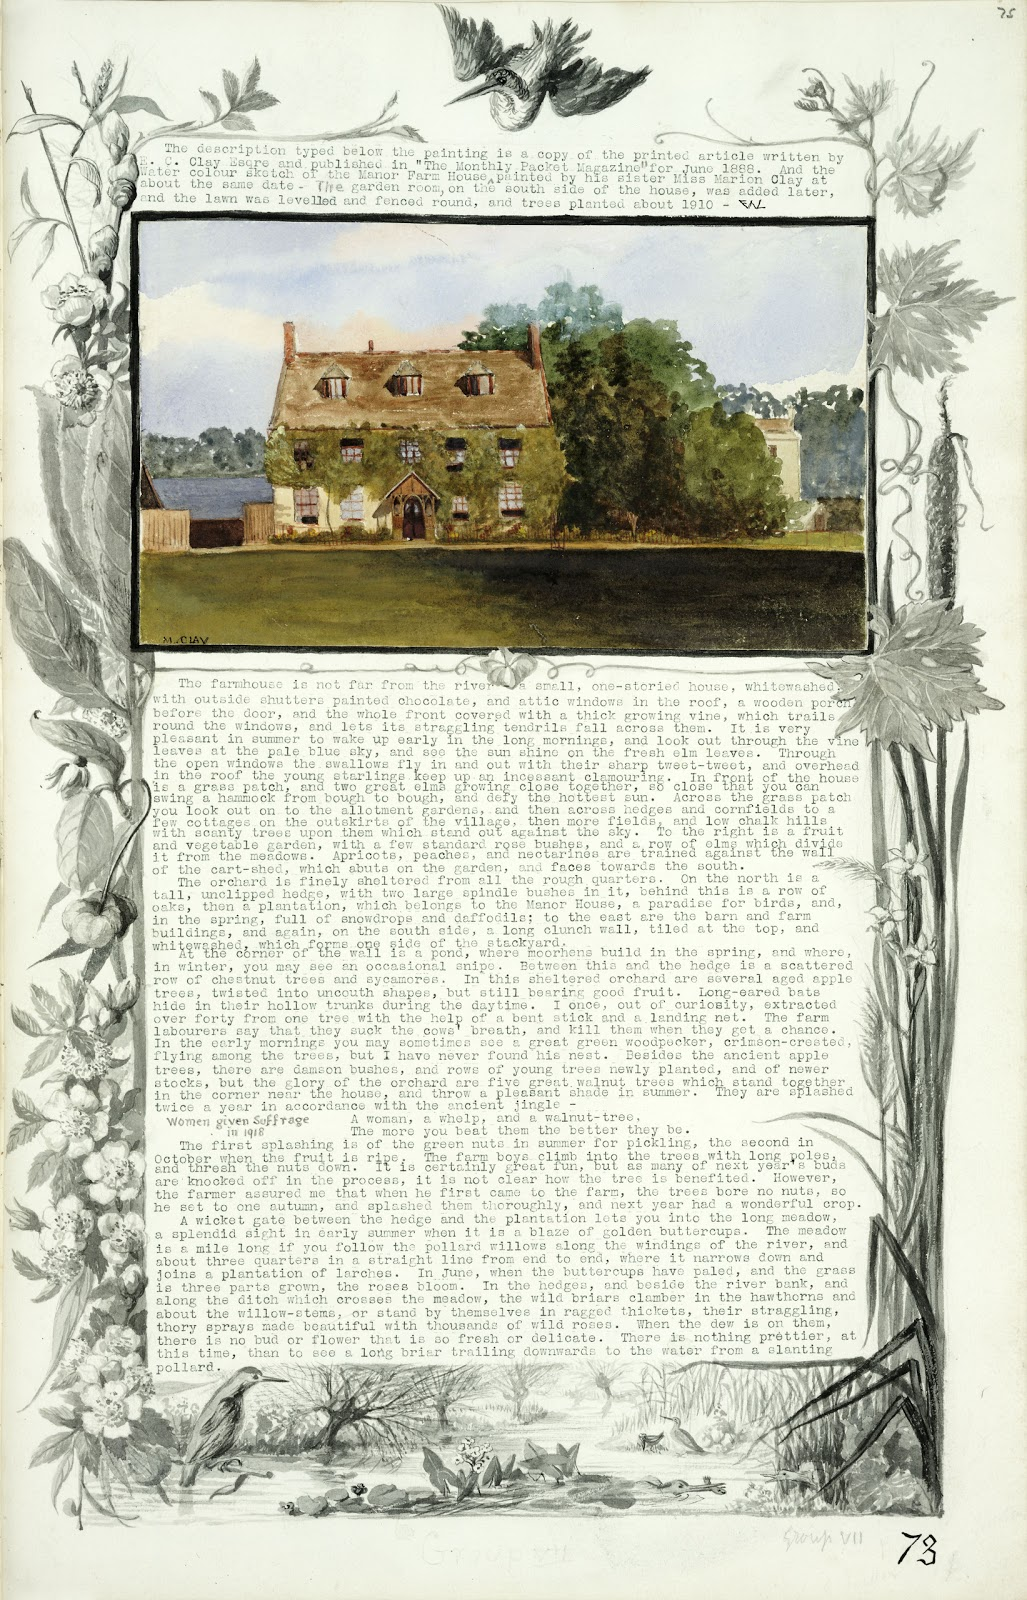 A Record of Shelford Parva by Fanny Wale P73 fo. 75, page 73: A black and white watercolour border of pond life scenes surrounds a coloured watercolour of the Manor Farm House with a description of it and its grounds from the 'Monthly packet magazine' of June 1888. [not in photographic copy]